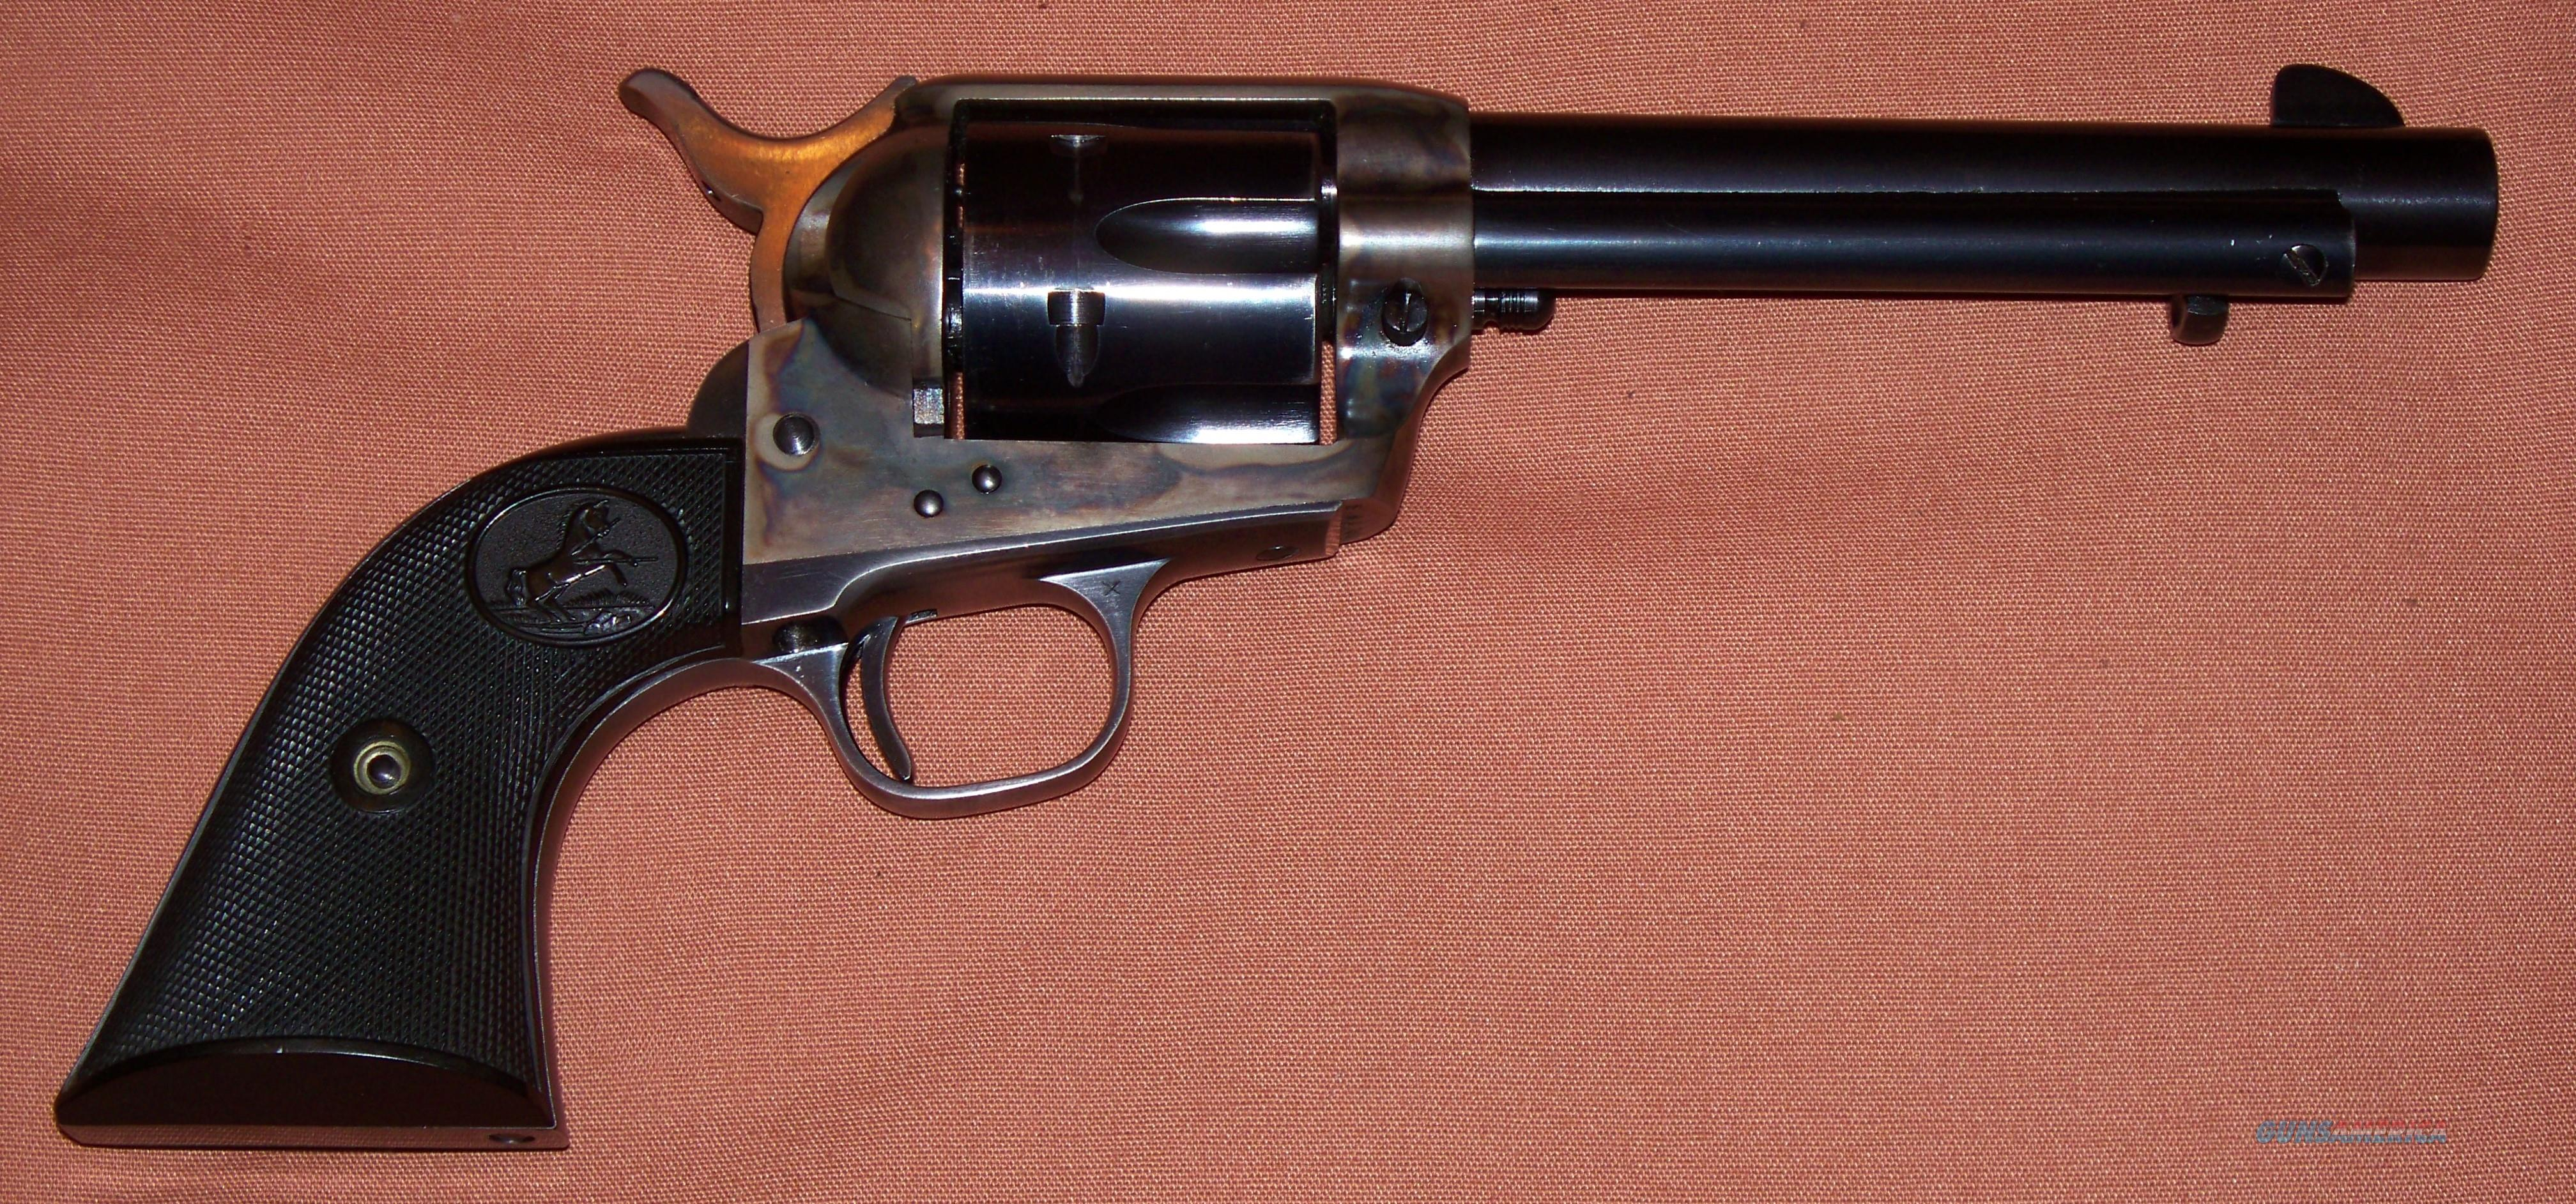 "Colt SAA 2nd Generation Single Action Army 5.5"" Barrel 45 LC c. 1956  Guns > Pistols > Colt Single Action Revolvers - 2nd Gen."